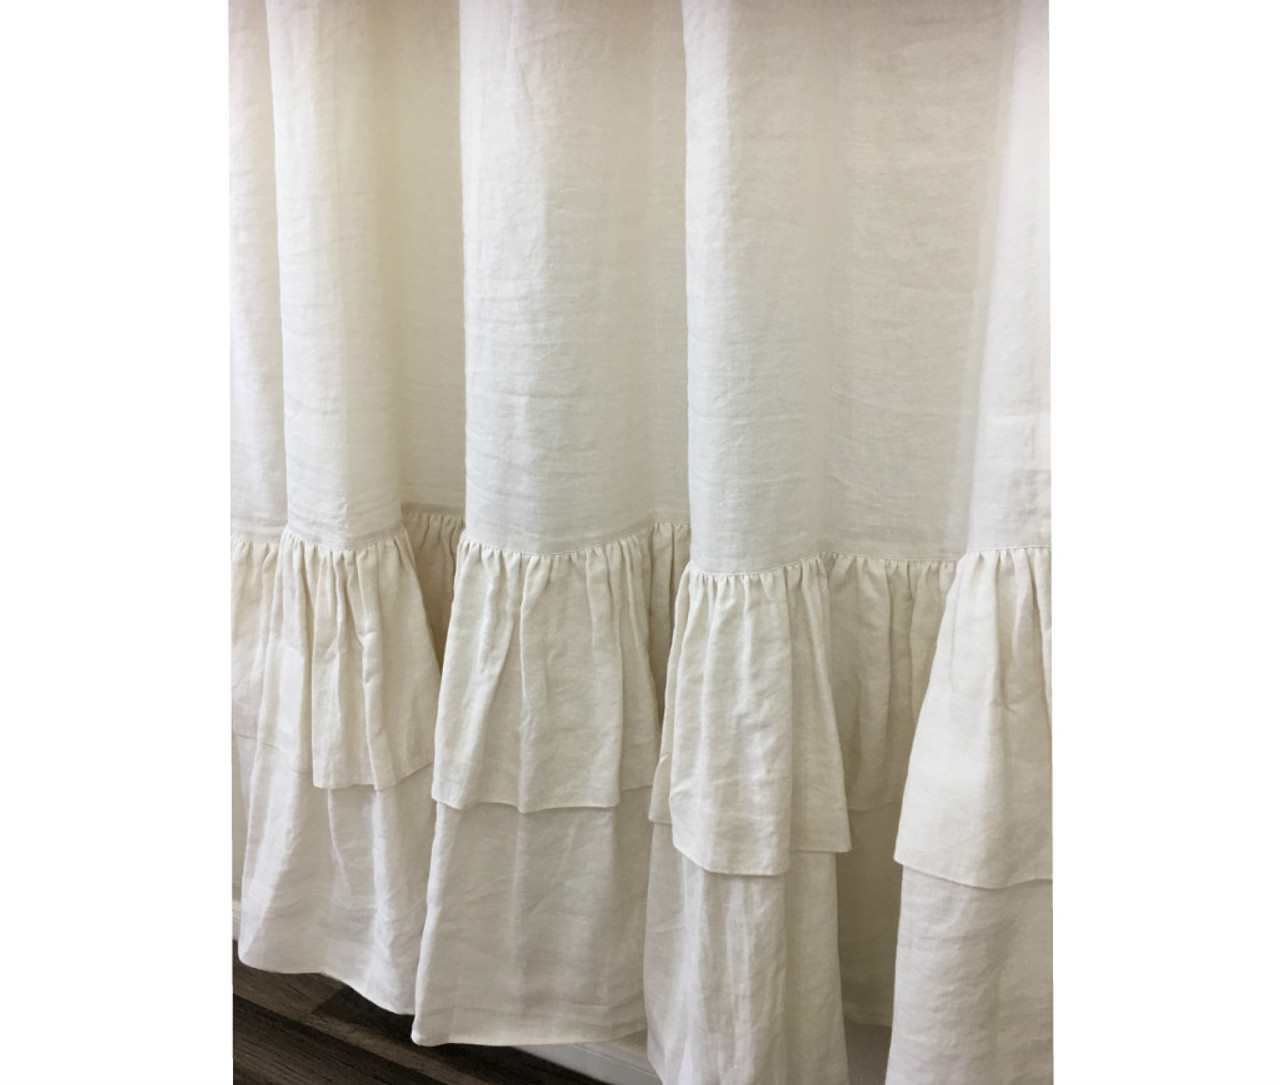 Lovely Cream Linen Shower Curtain With Double Layer Ruffles, Fabulous Chic!